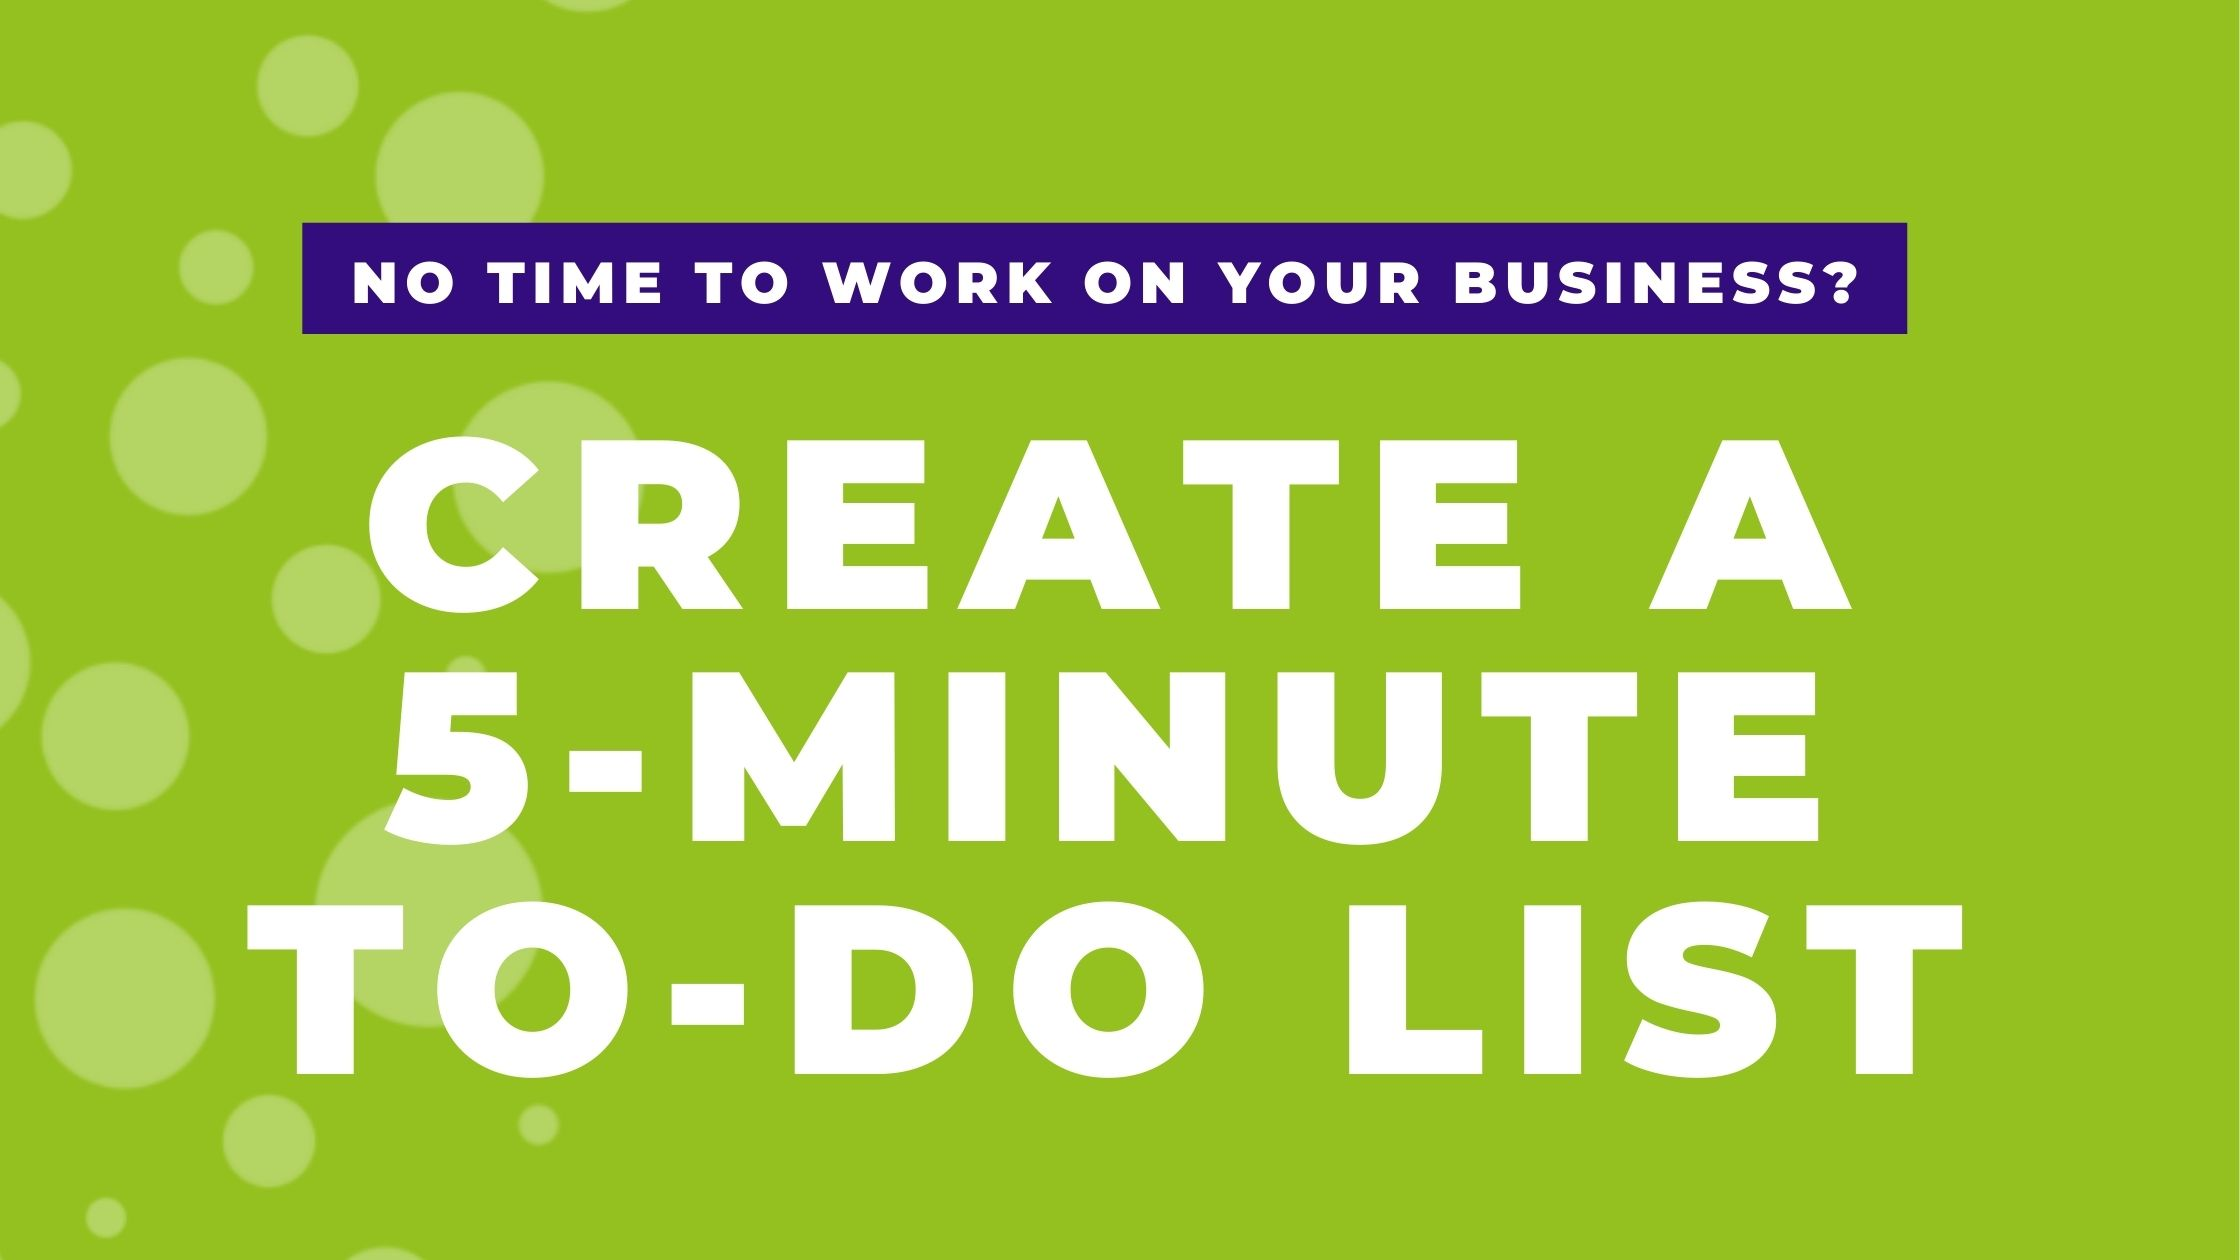 Create a 5-minute list to find time to work on your business